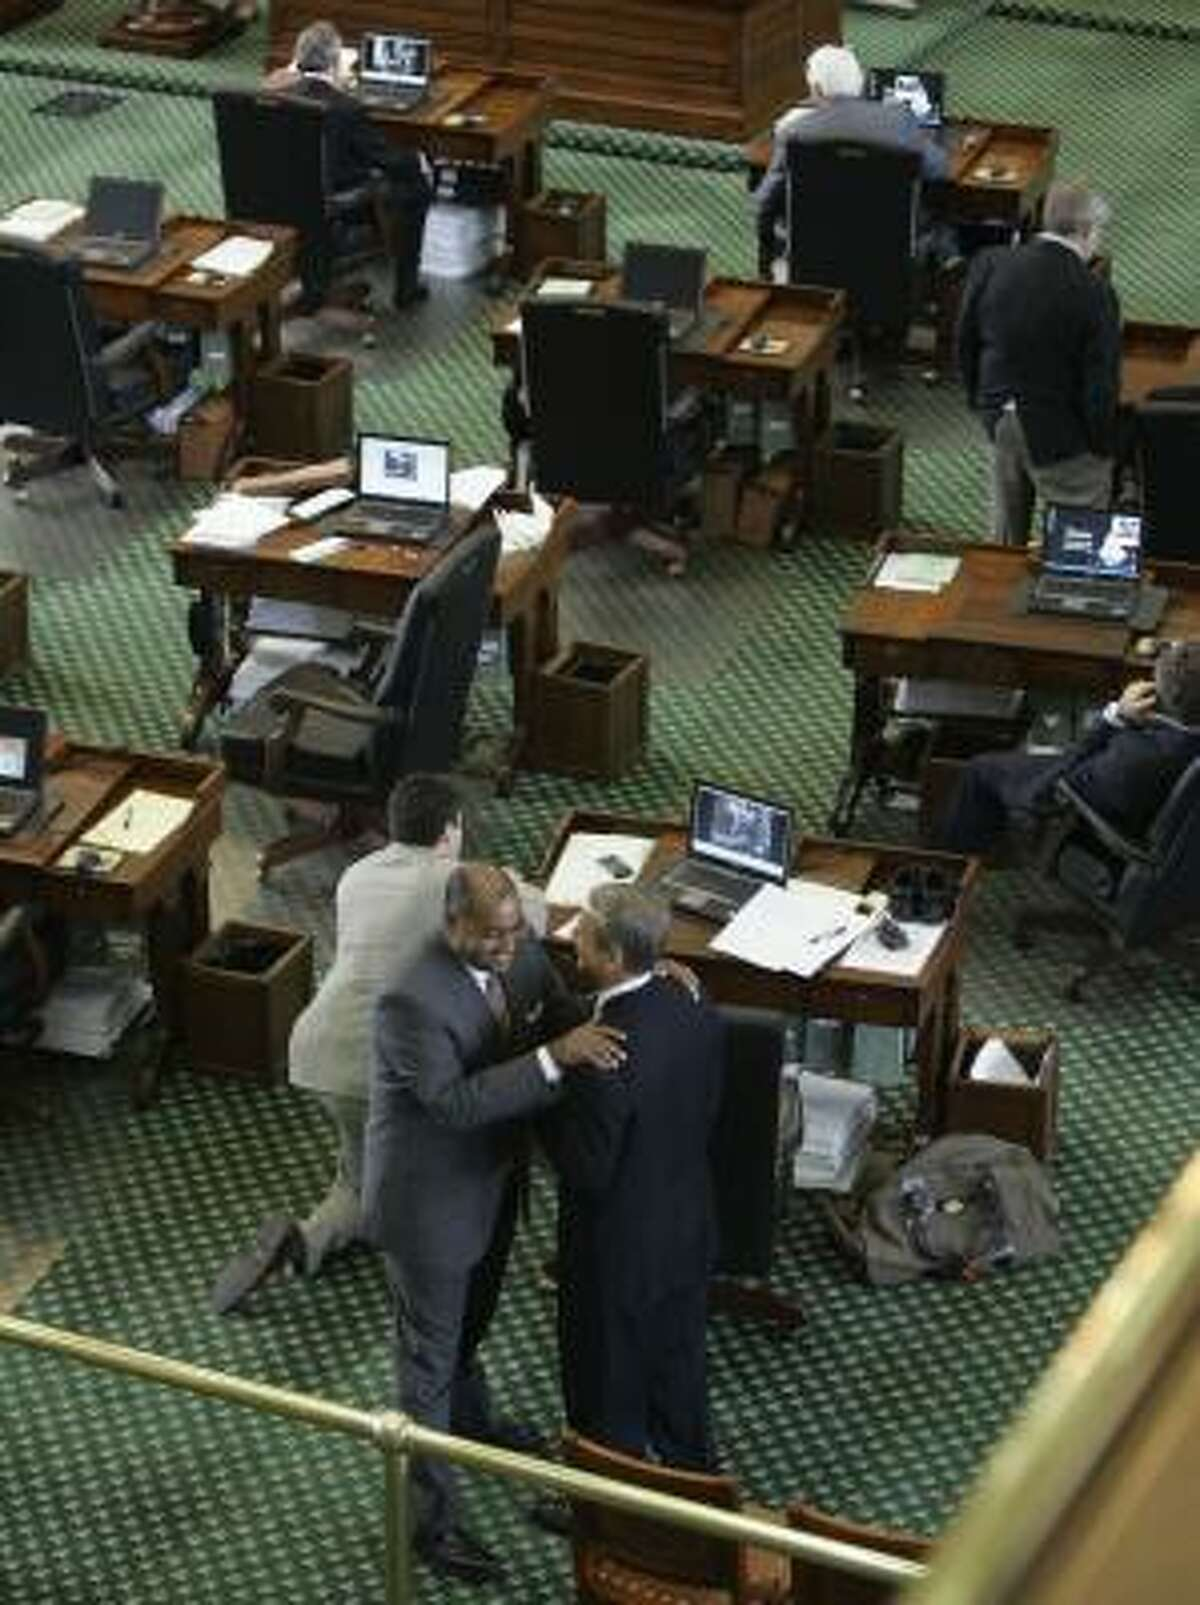 Sen. Rodney Ellis, D-Houston, standing on the left, talks with Sen. Kyle Janek, R-Houston, the day before the 80th Texas legislative session ended. During the final hours, Ellis represented the threat of a filibuster, which could have resulted in a special session to pass a budget. That did not happen, however.